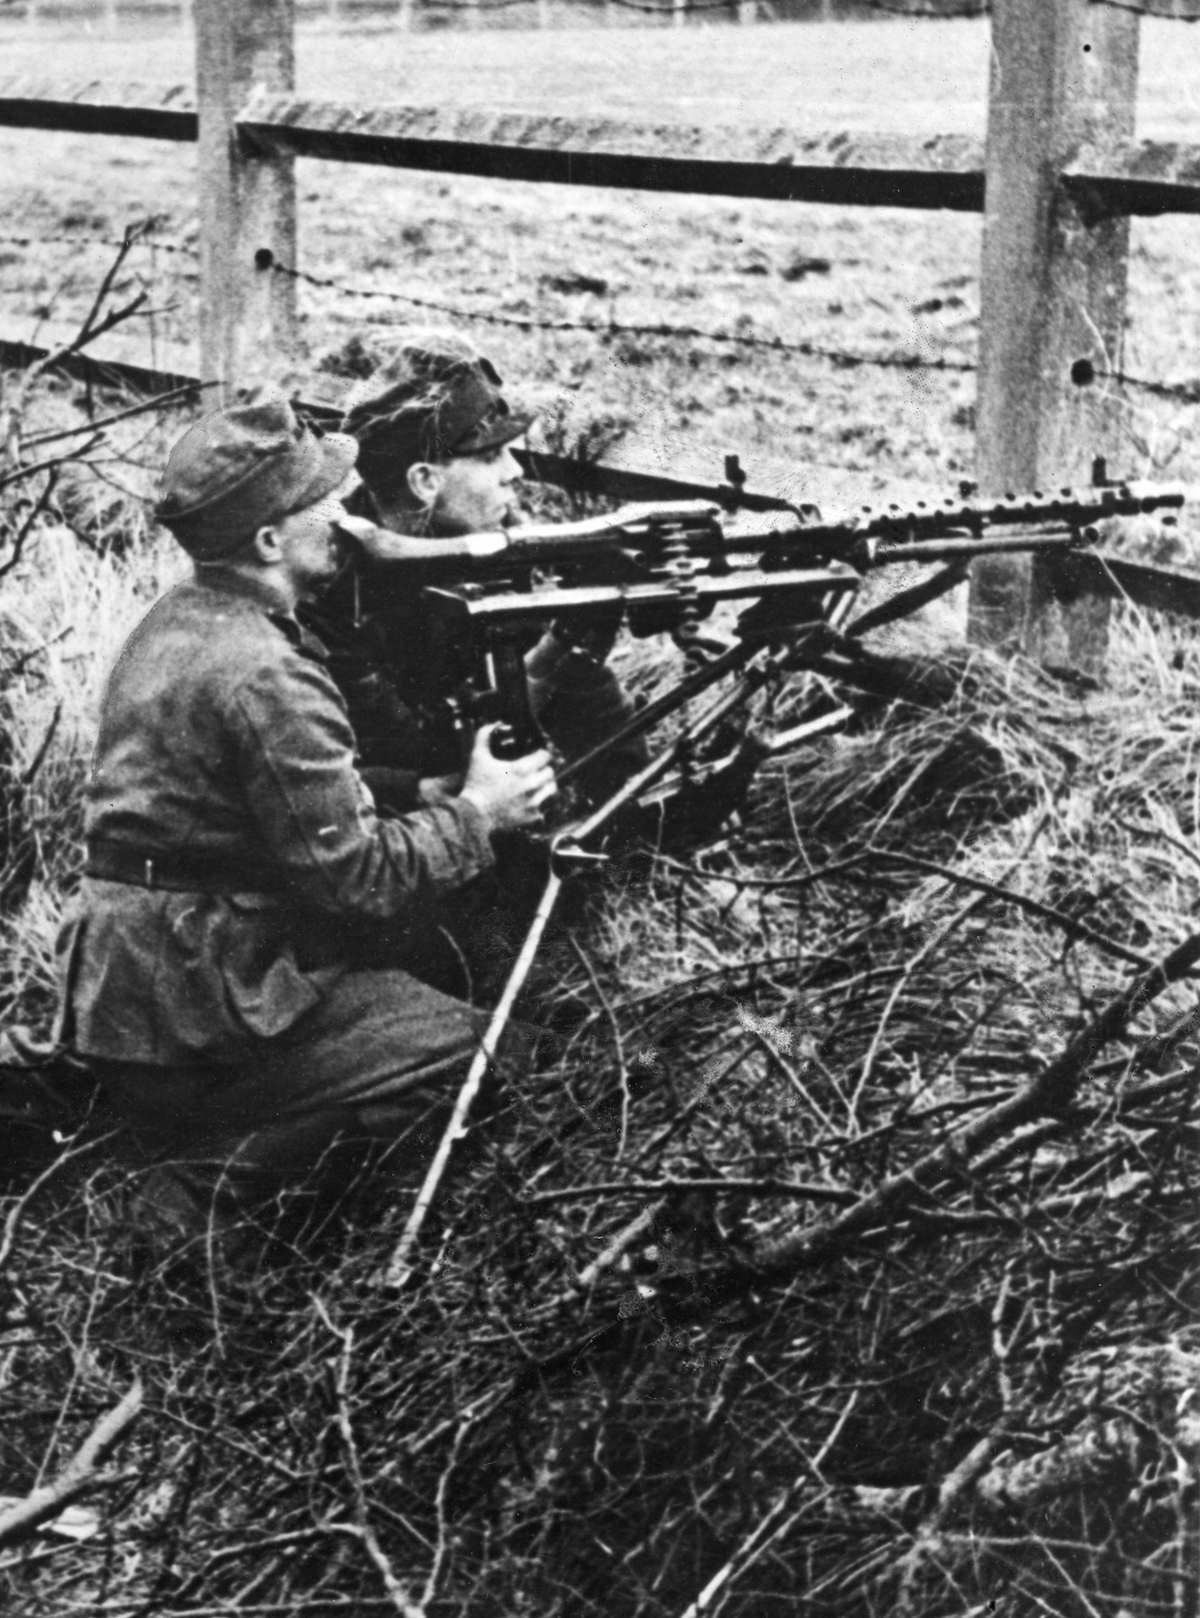 A German machine gun element deploying the MG-34 somewhere on the Eastern Front, fall 1941. By the beginning of Barbarossa, the German machine gun element had moved from 4 crew down to 2.